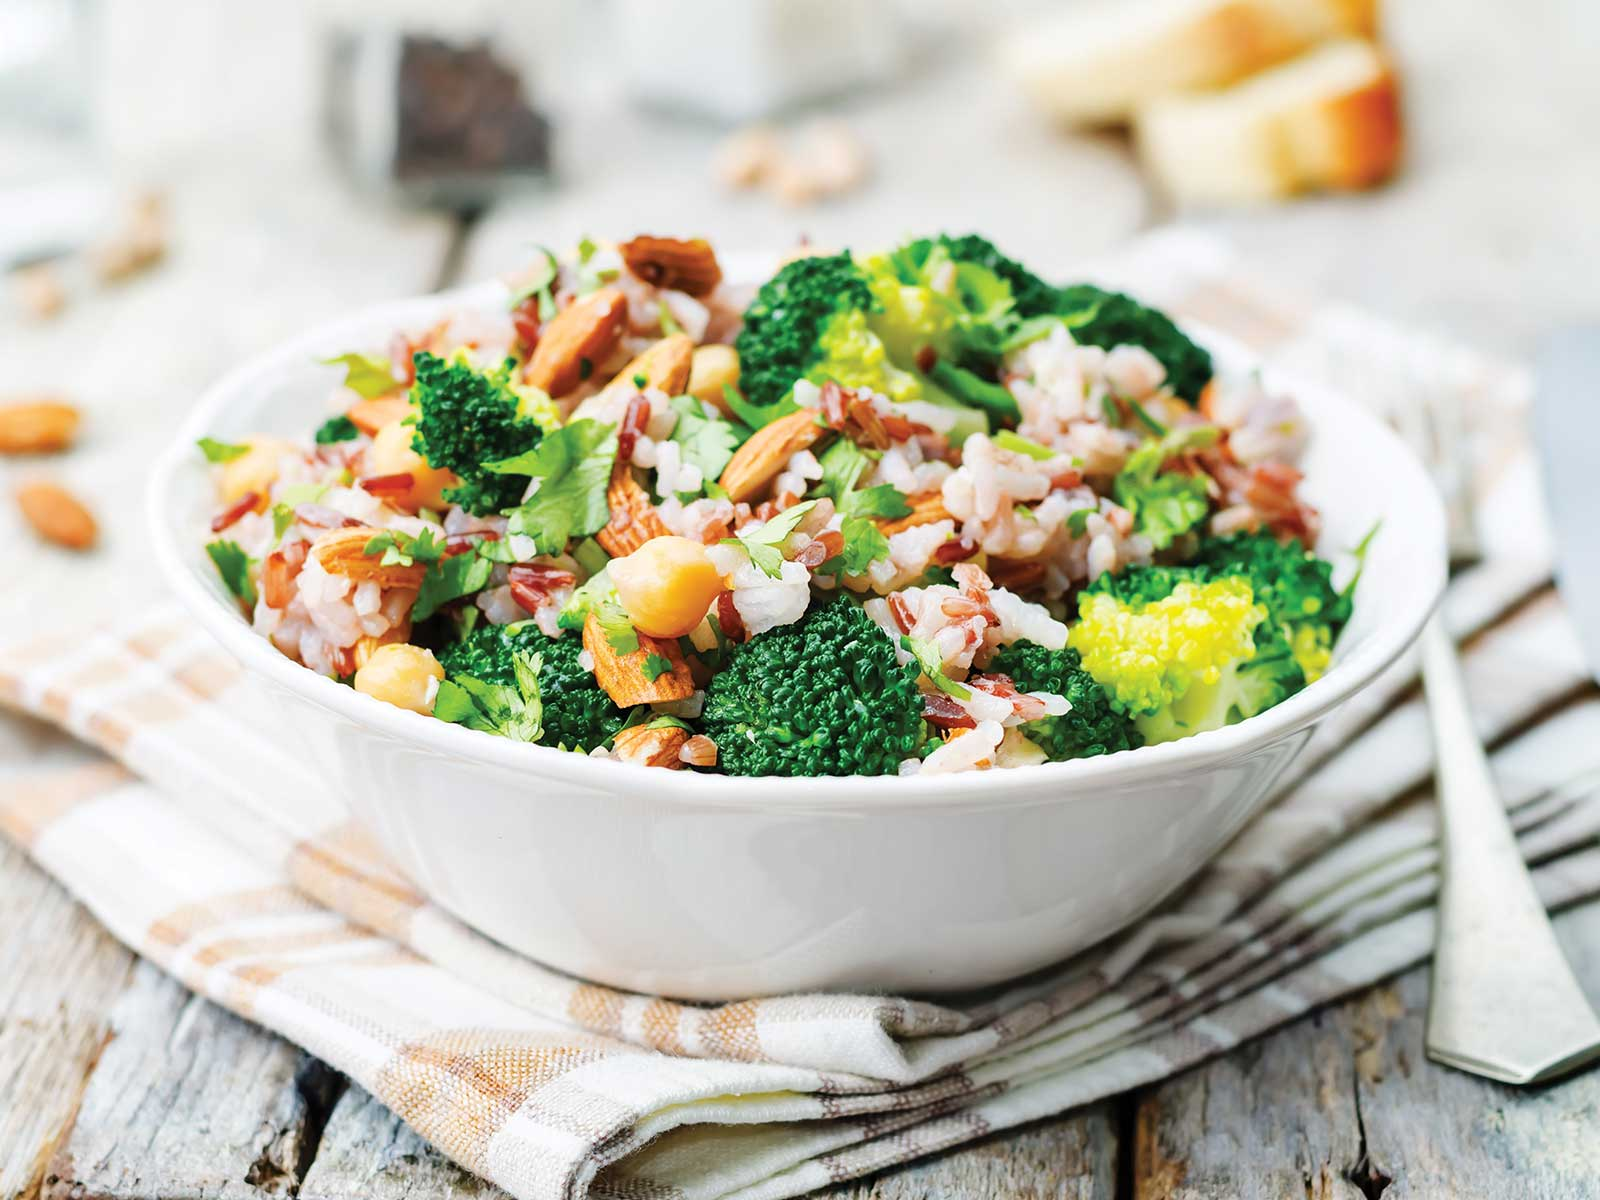 Broccoli chickpea bowl topped with almonds